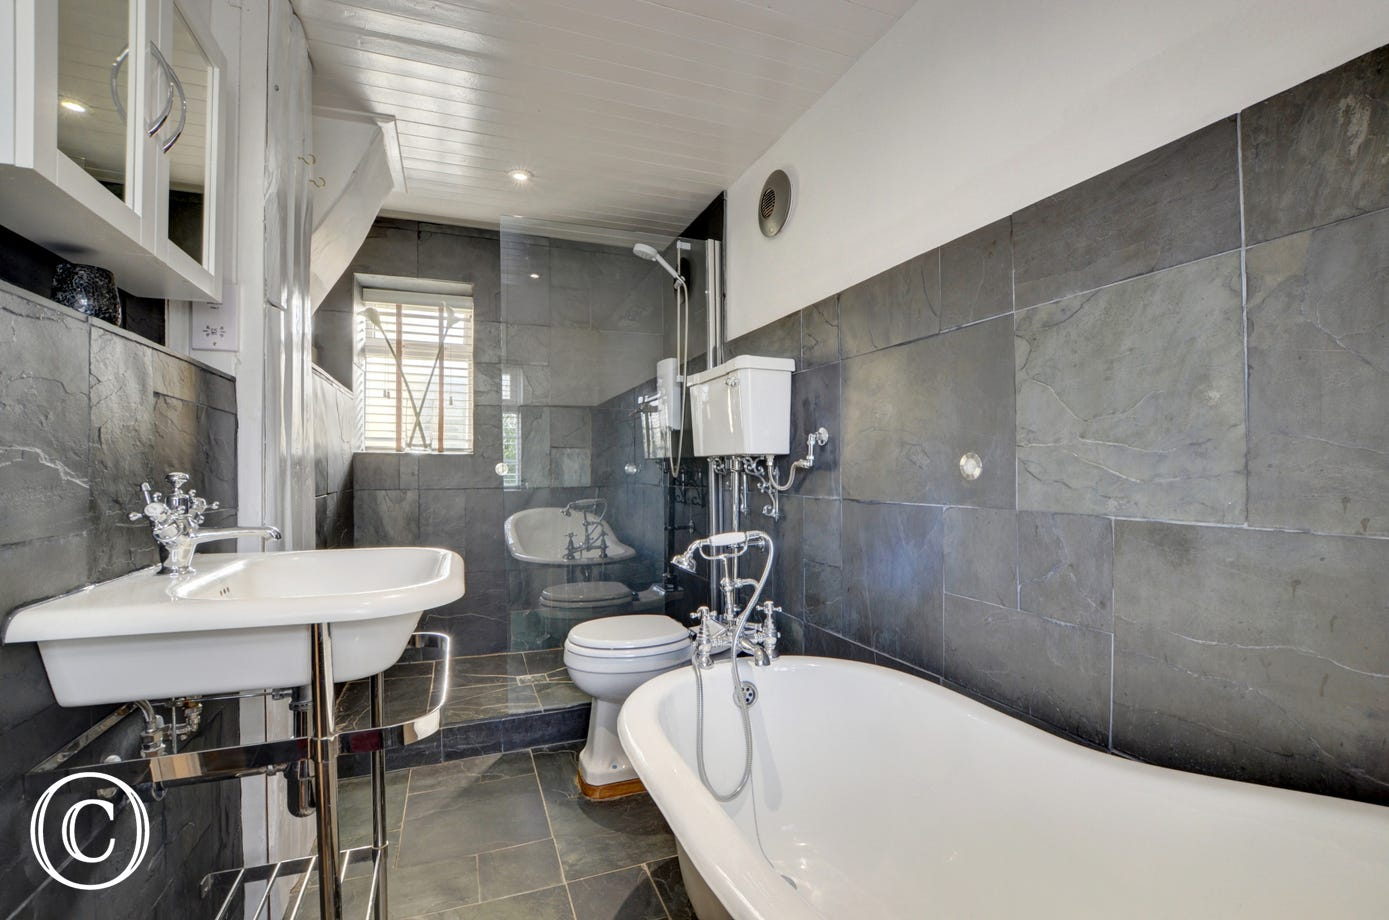 The tasteful ground floor family bathroom has a slipper bath, walk-in shower, WC and basin as well as under floor heating